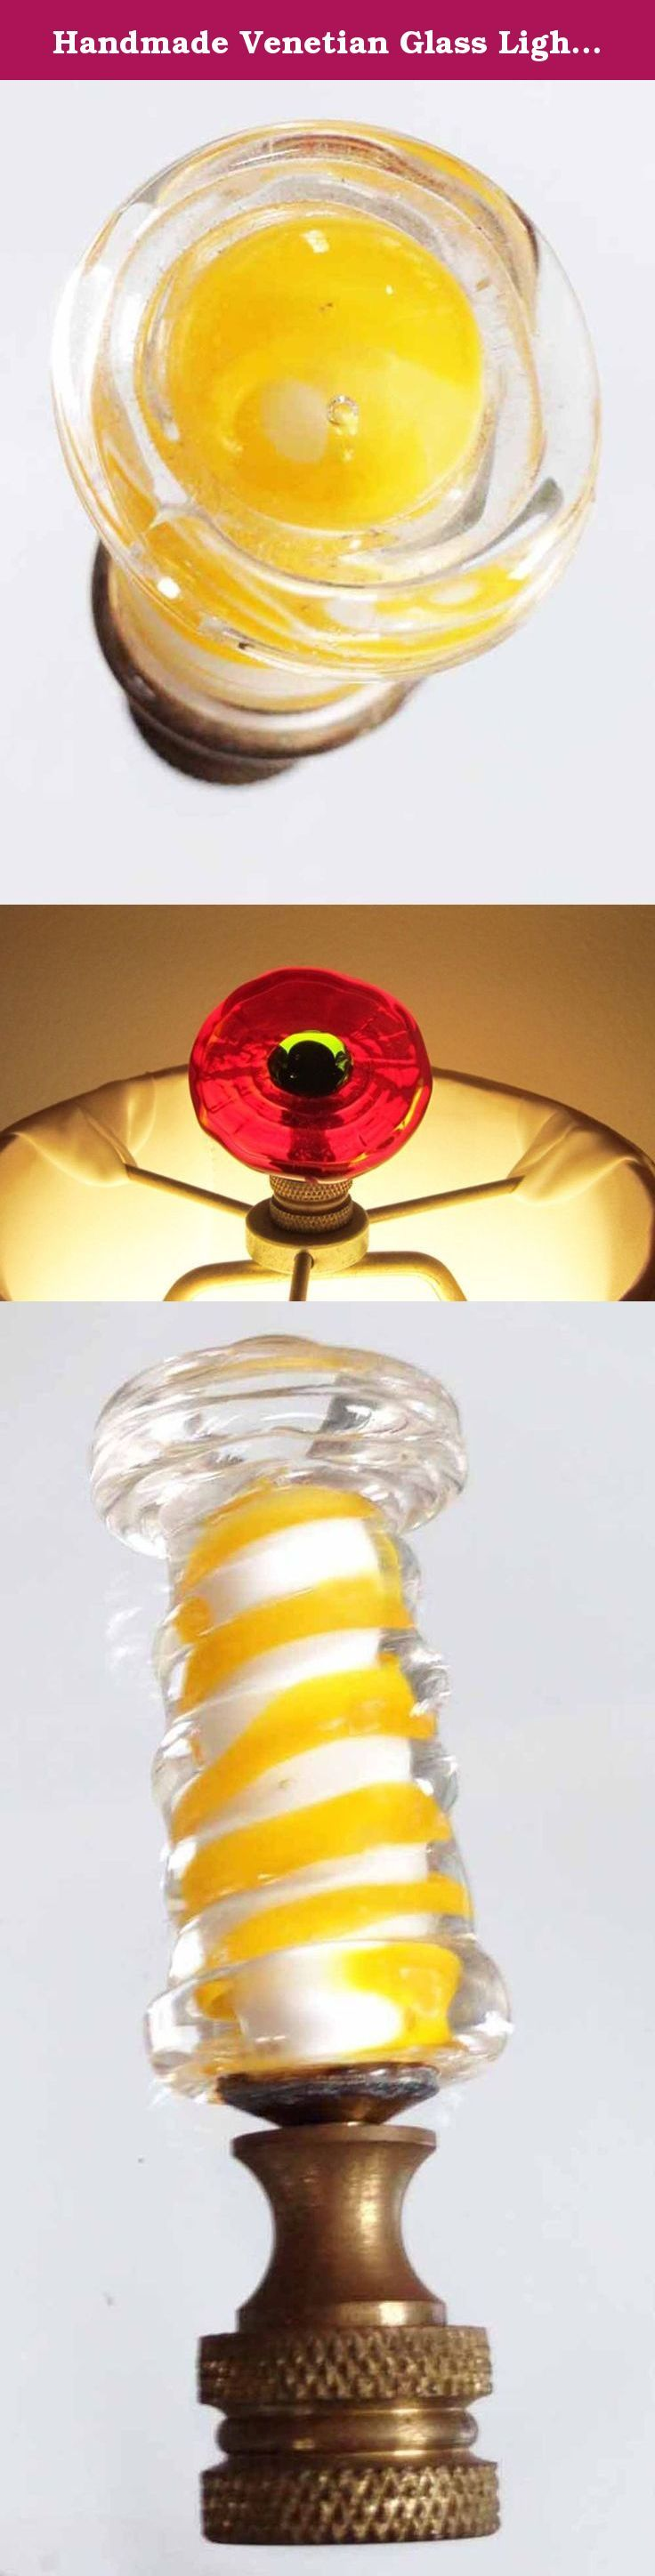 Handmade Venetian Glass Lighthouse Lamp Finial - Yellow White, Crystal Clear Brass Hardware Lampwork Glass - Finials Hold Lampshades On Lamps. Handmade Venetian Glass Lighthouse Lamp Finial - Yellow White, Crystal Clear Brass Hardware Lampwork Glass - Finials Hold Lampshades On Lamps Overall Height about 2 3/4 inch. Hardware is brass. Electrical fittings are commonly made in a universal size and should easily fit your lamp. The retail price of my glass lamp finials start at 45. in fine...